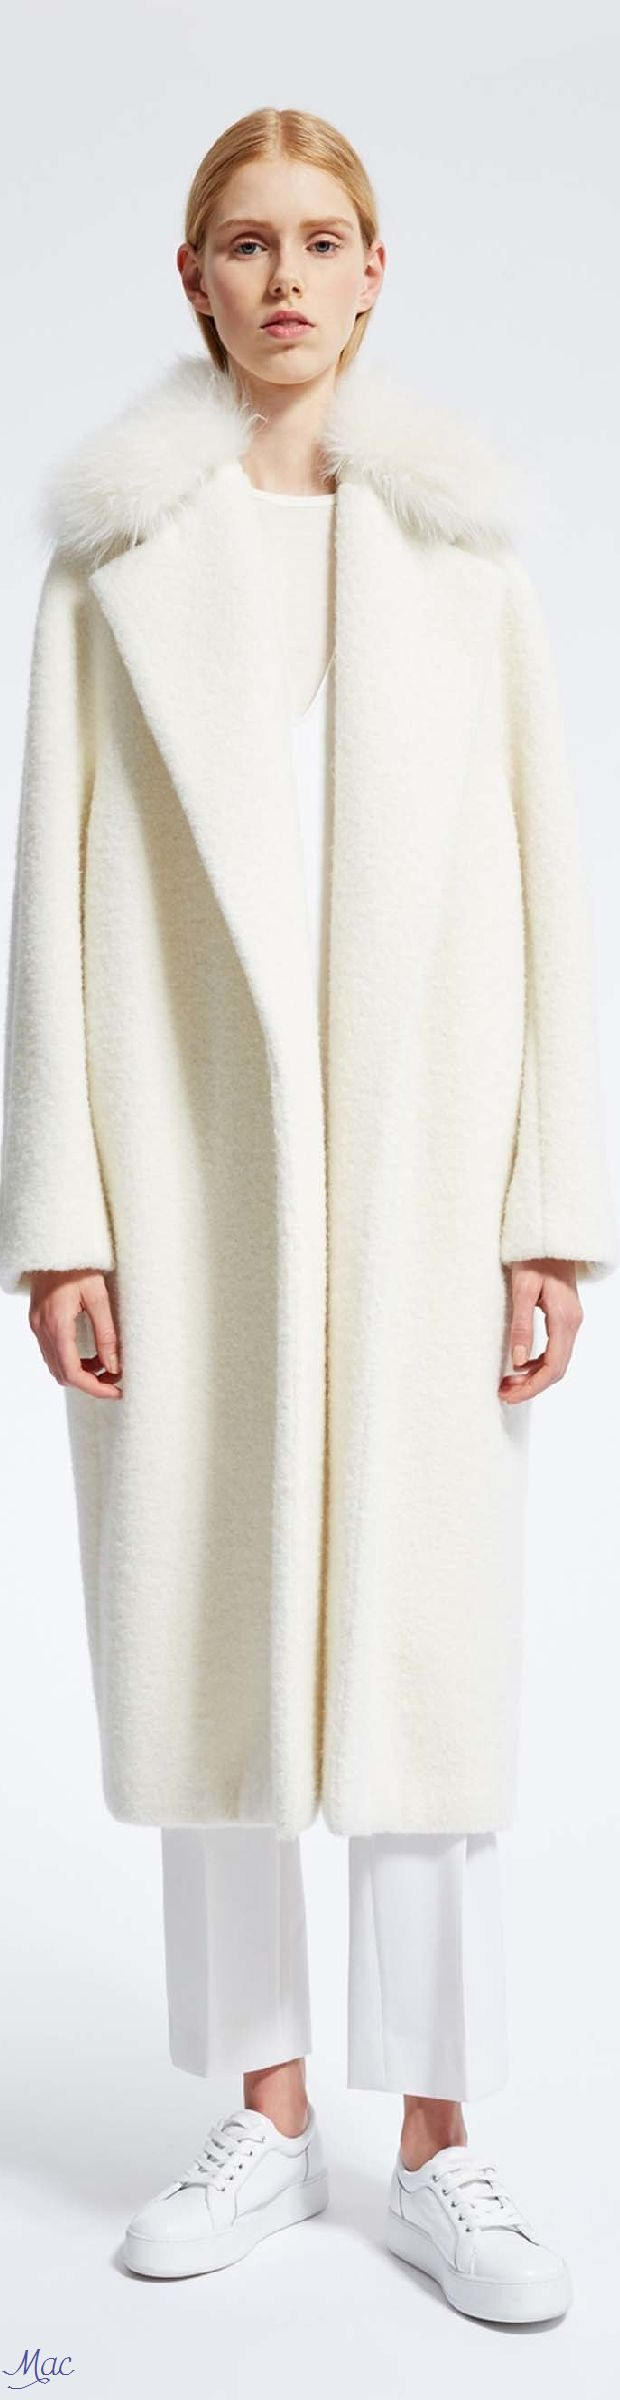 Fall 2016 Ready-to-Wear Max Mara Atelier